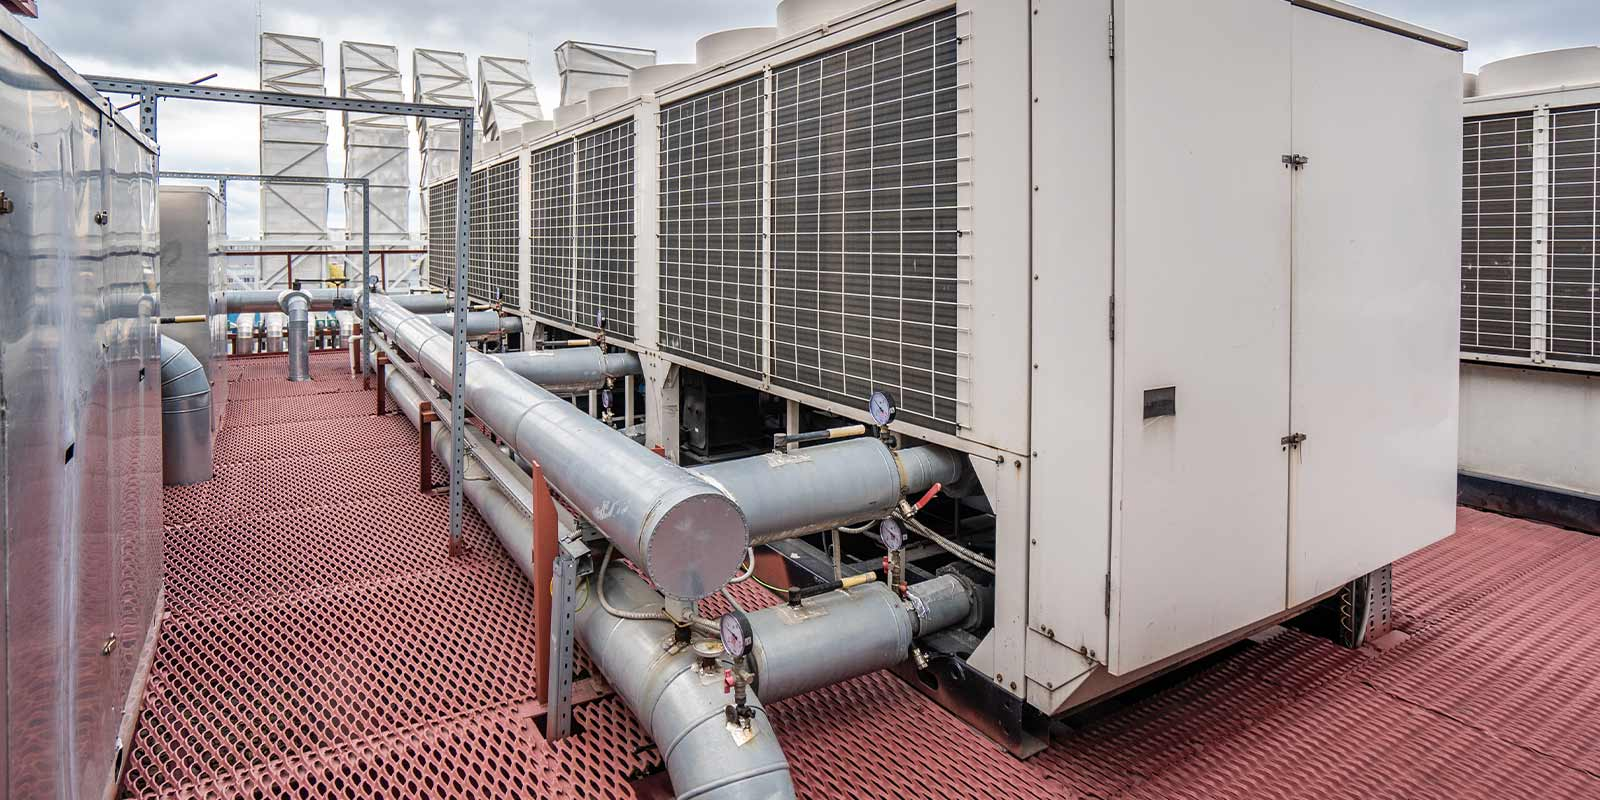 large rooftop glycol cooling system